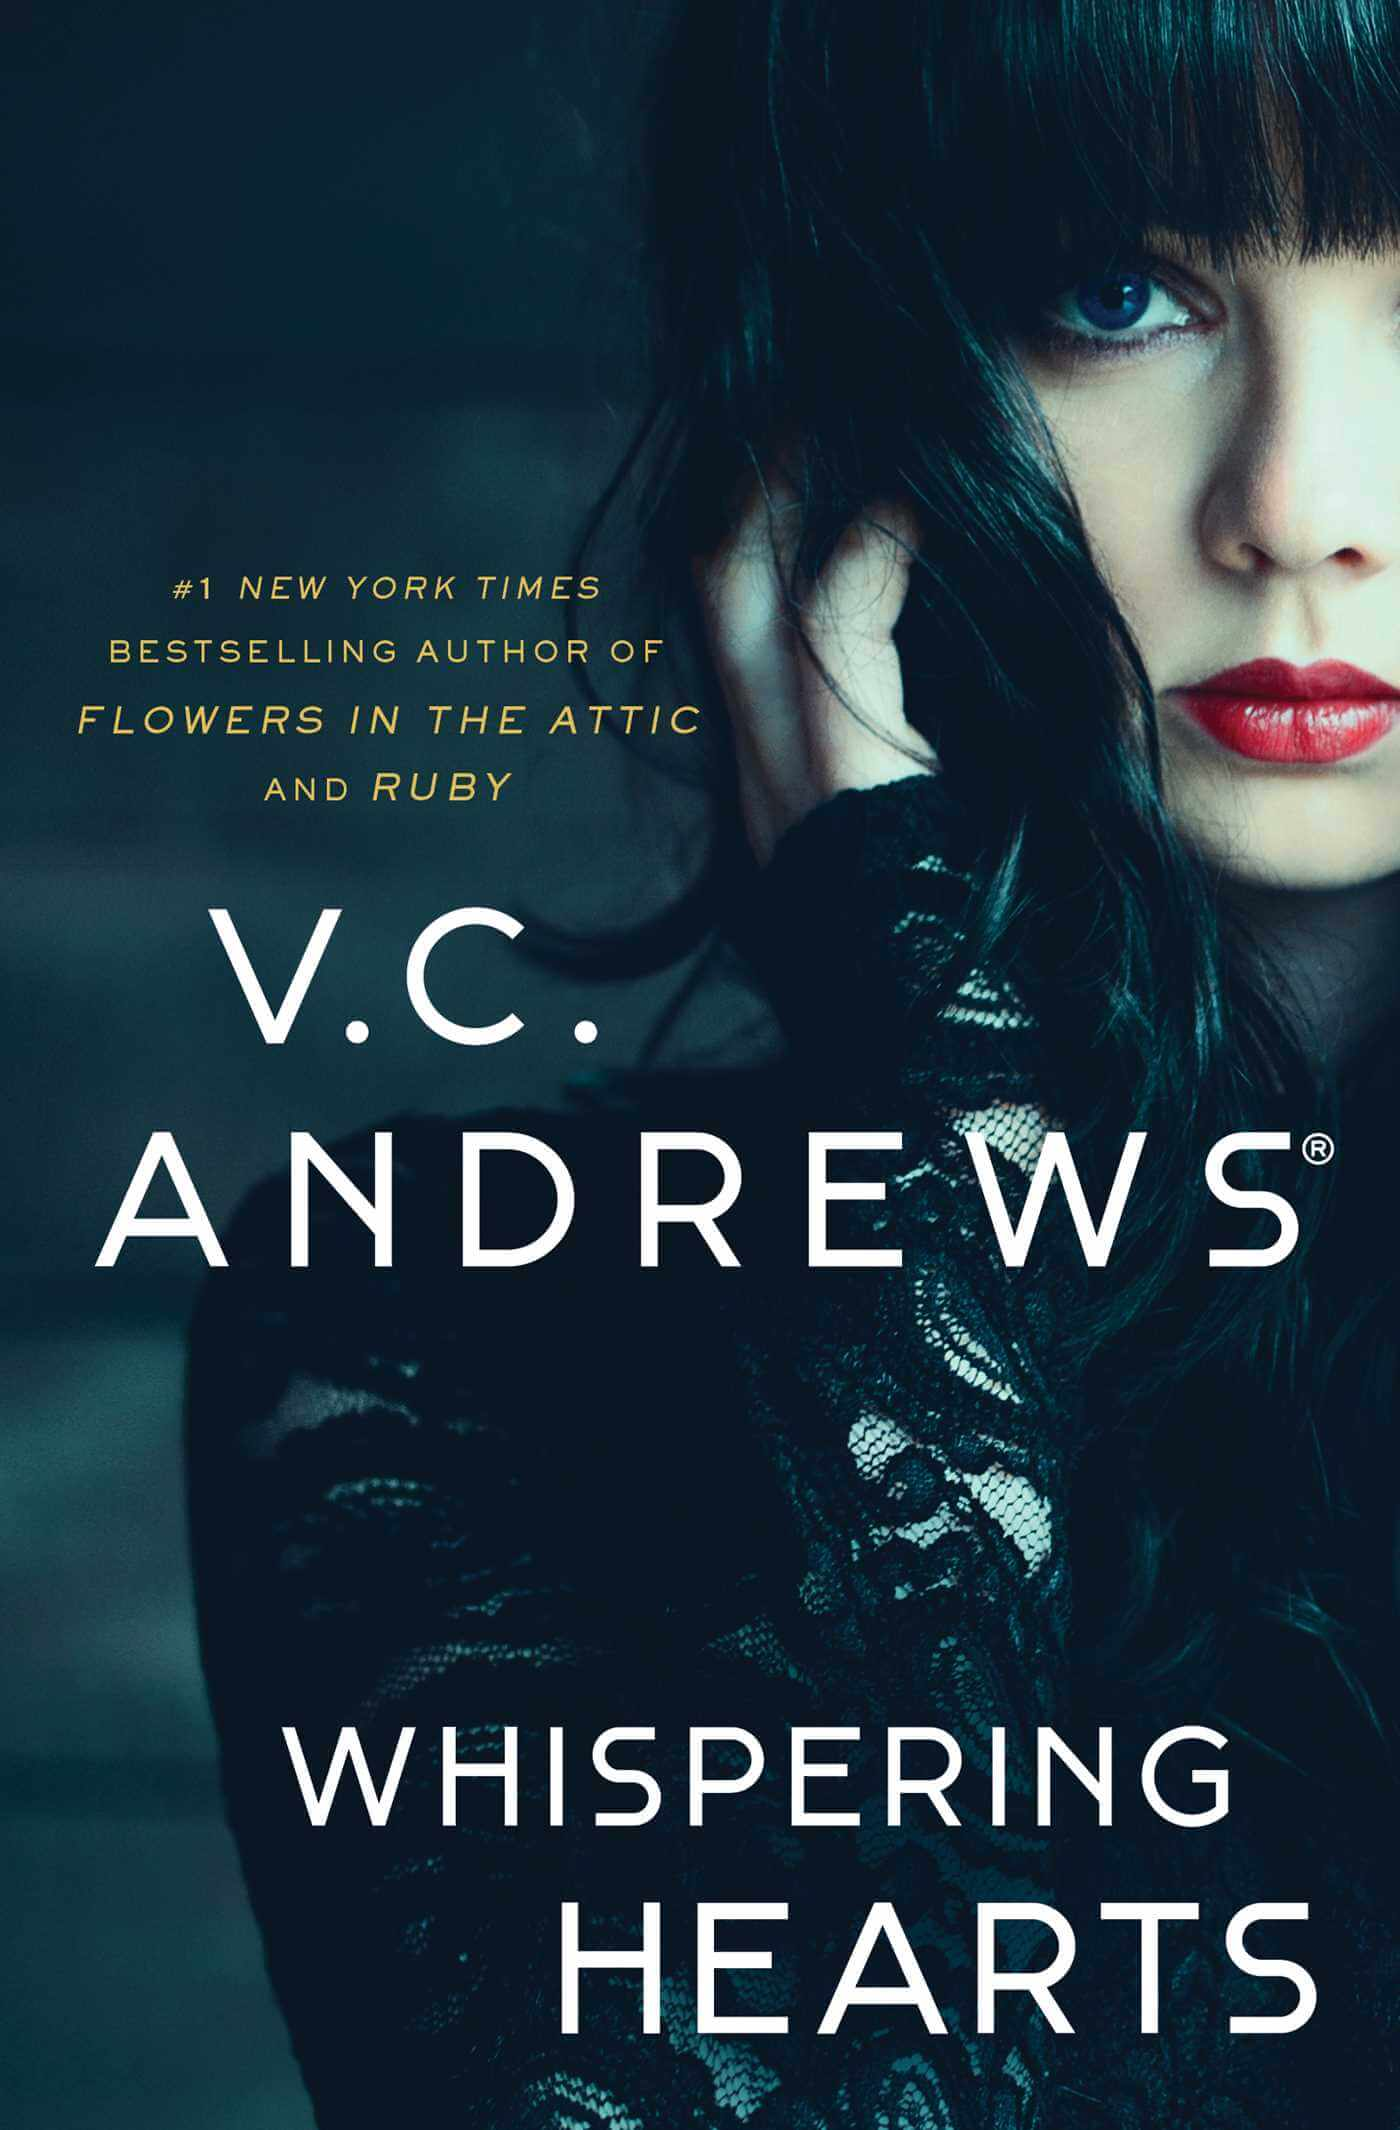 Most Anticipated Fall Thrillers - Whispering Hearts by V.C. Andrews